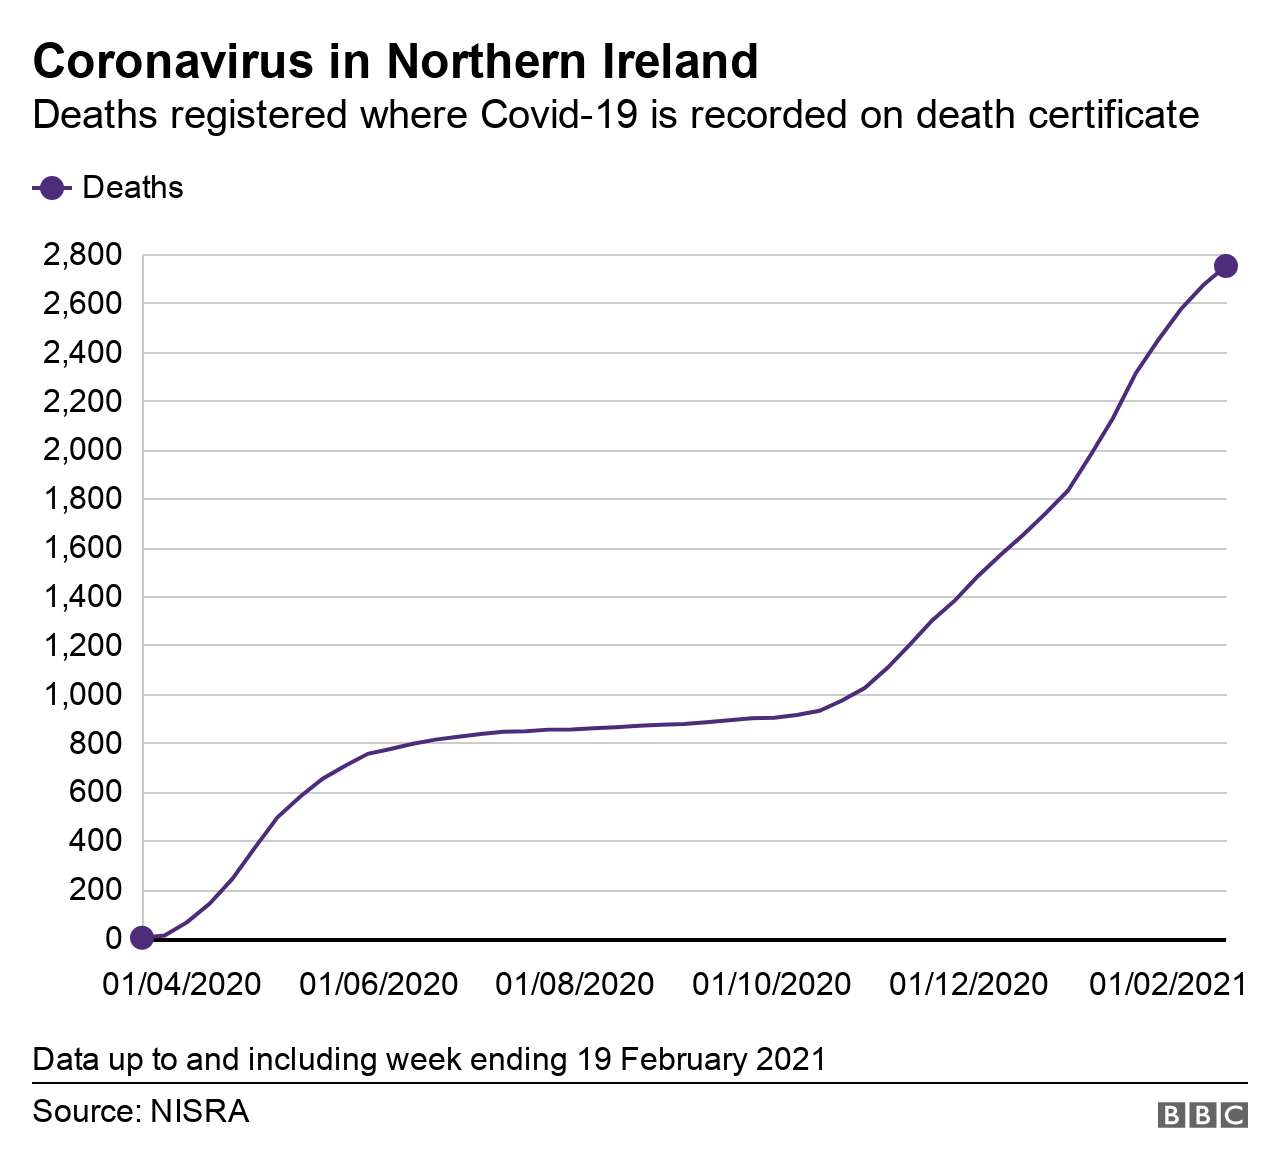 Graph showing deaths where Covid-19 is mentioned on death certificates